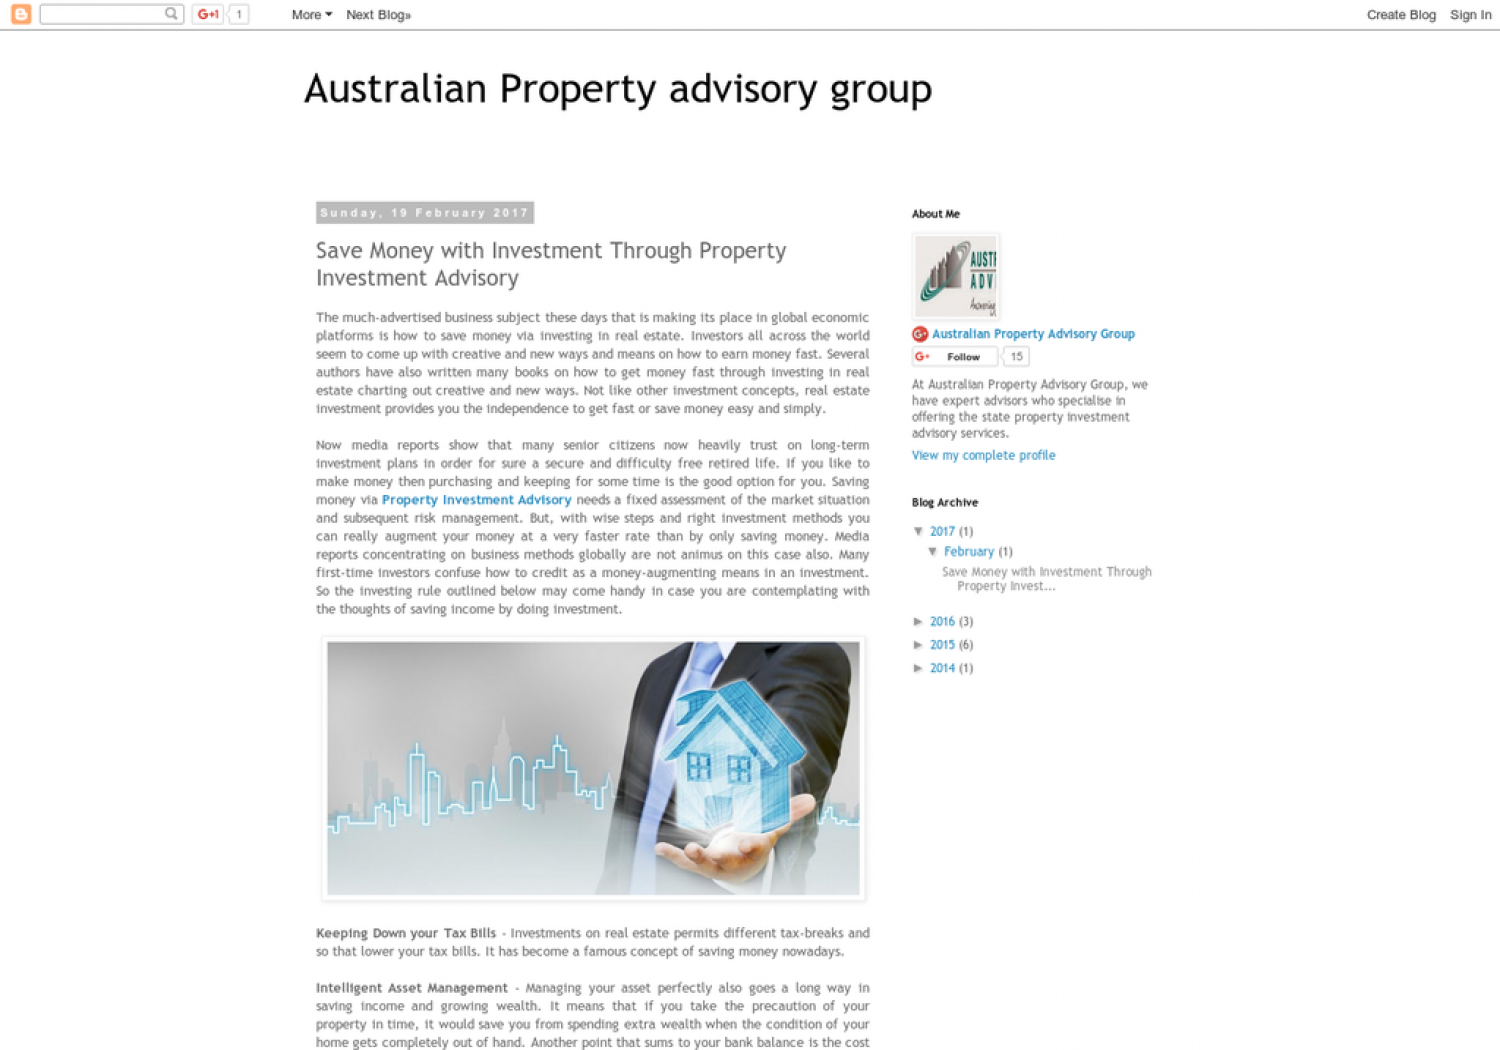 Save Money with Investment Through Property Investment Advisory Infographic